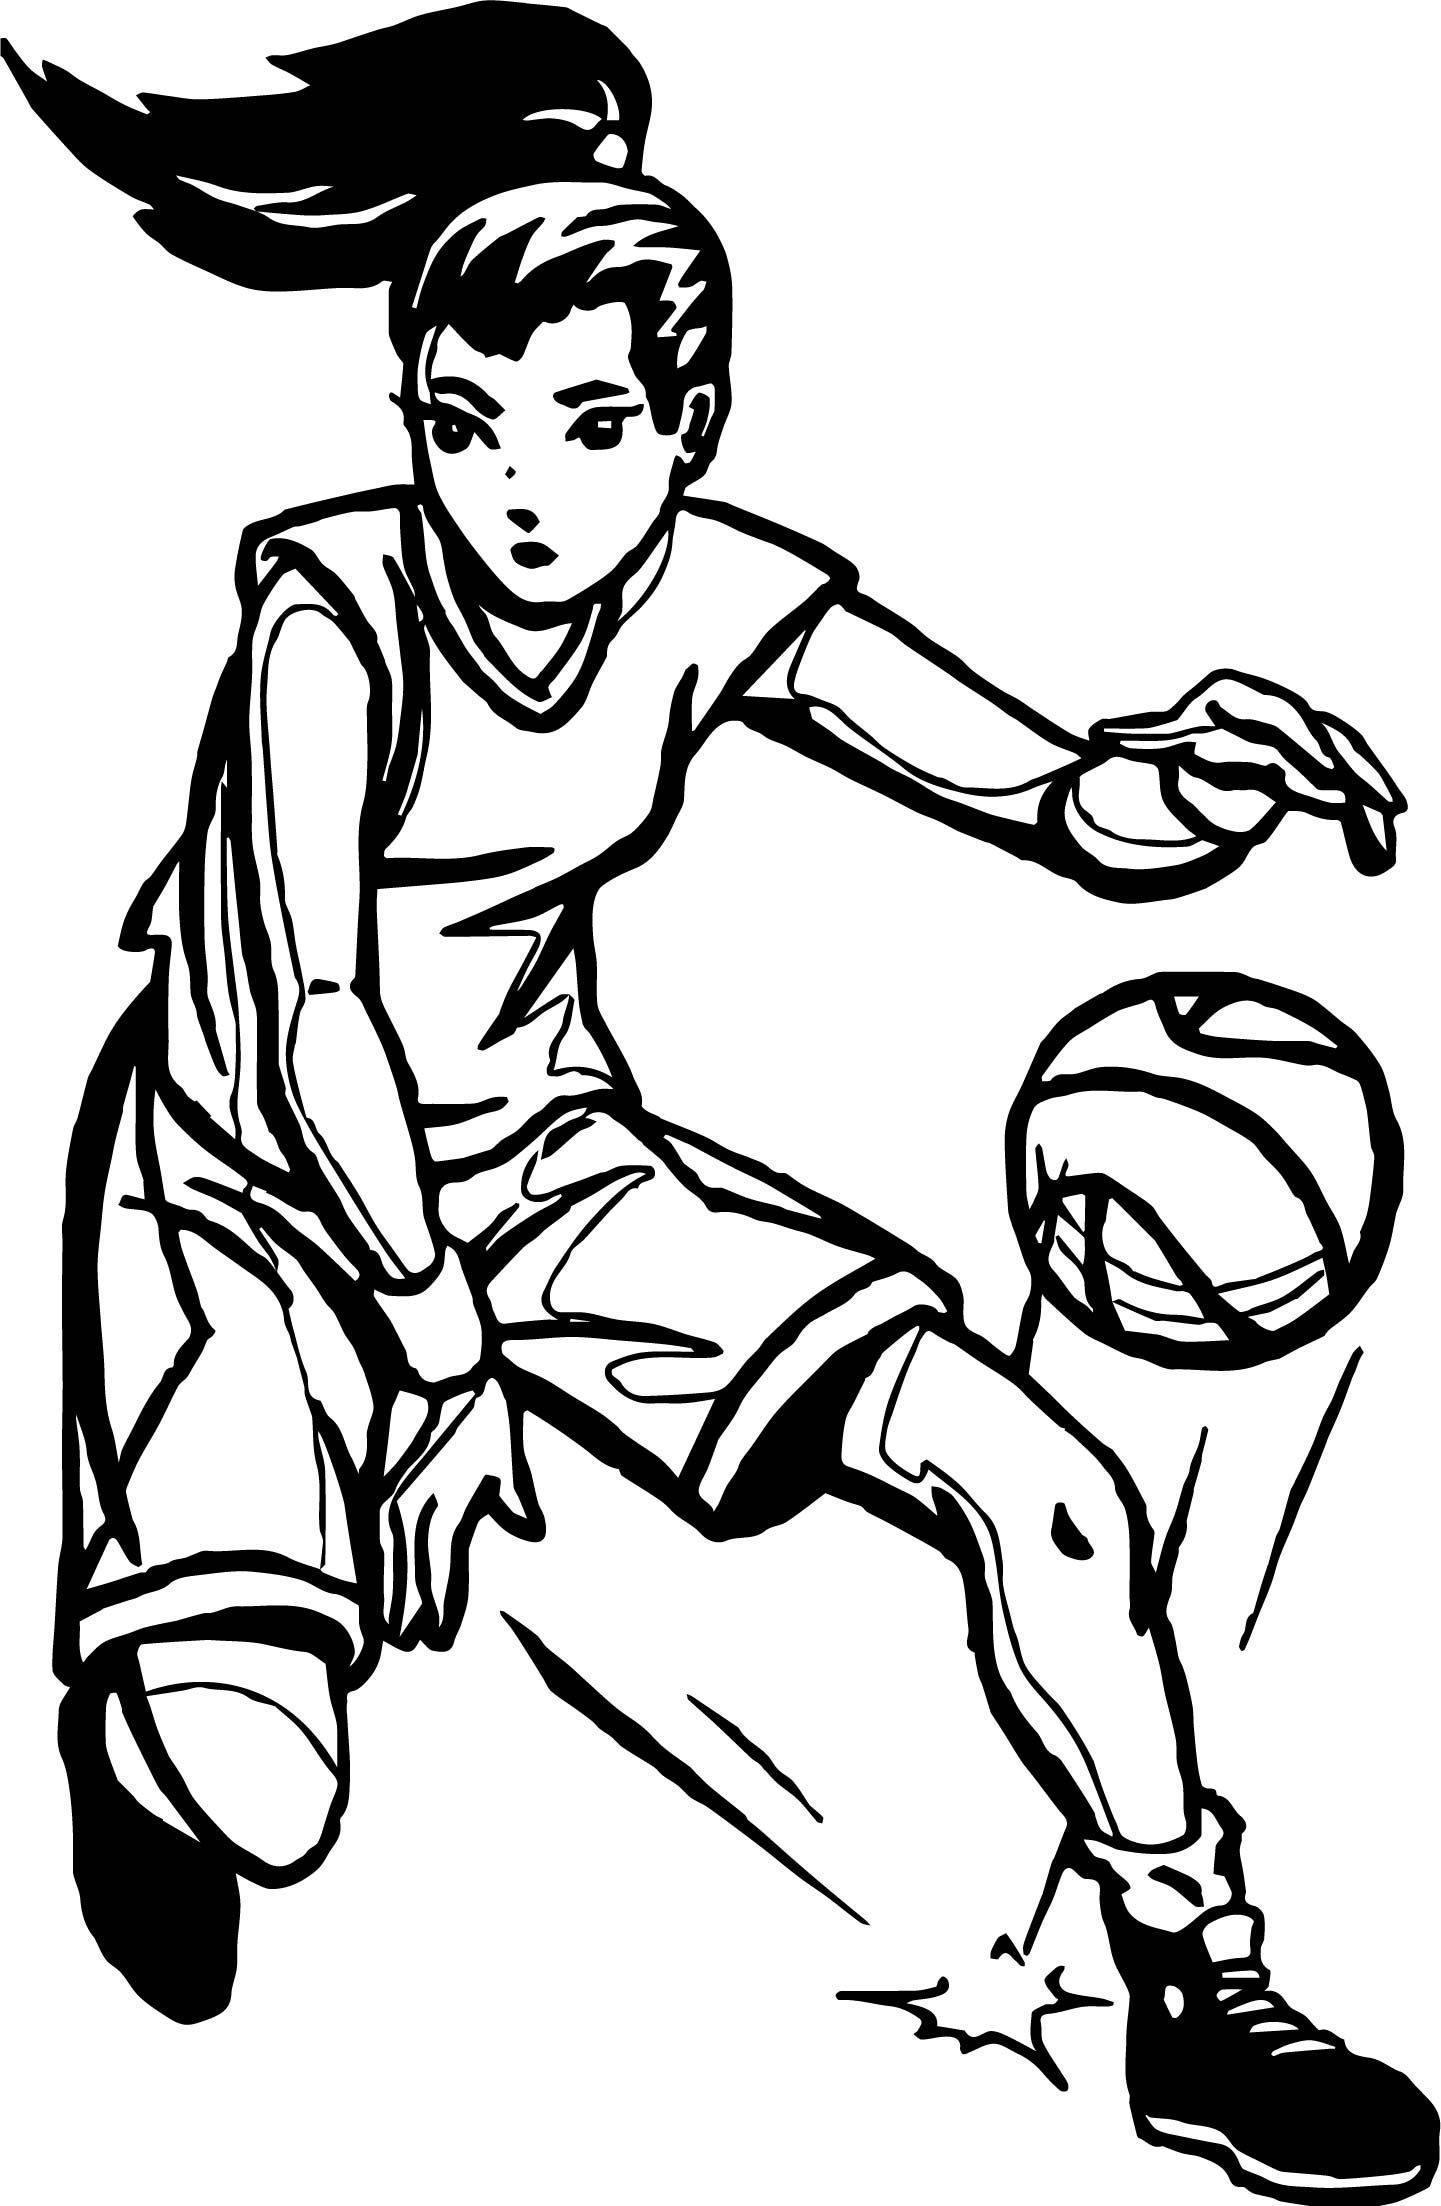 Awesome Girl Player Playing Basketball Coloring Page Coloring